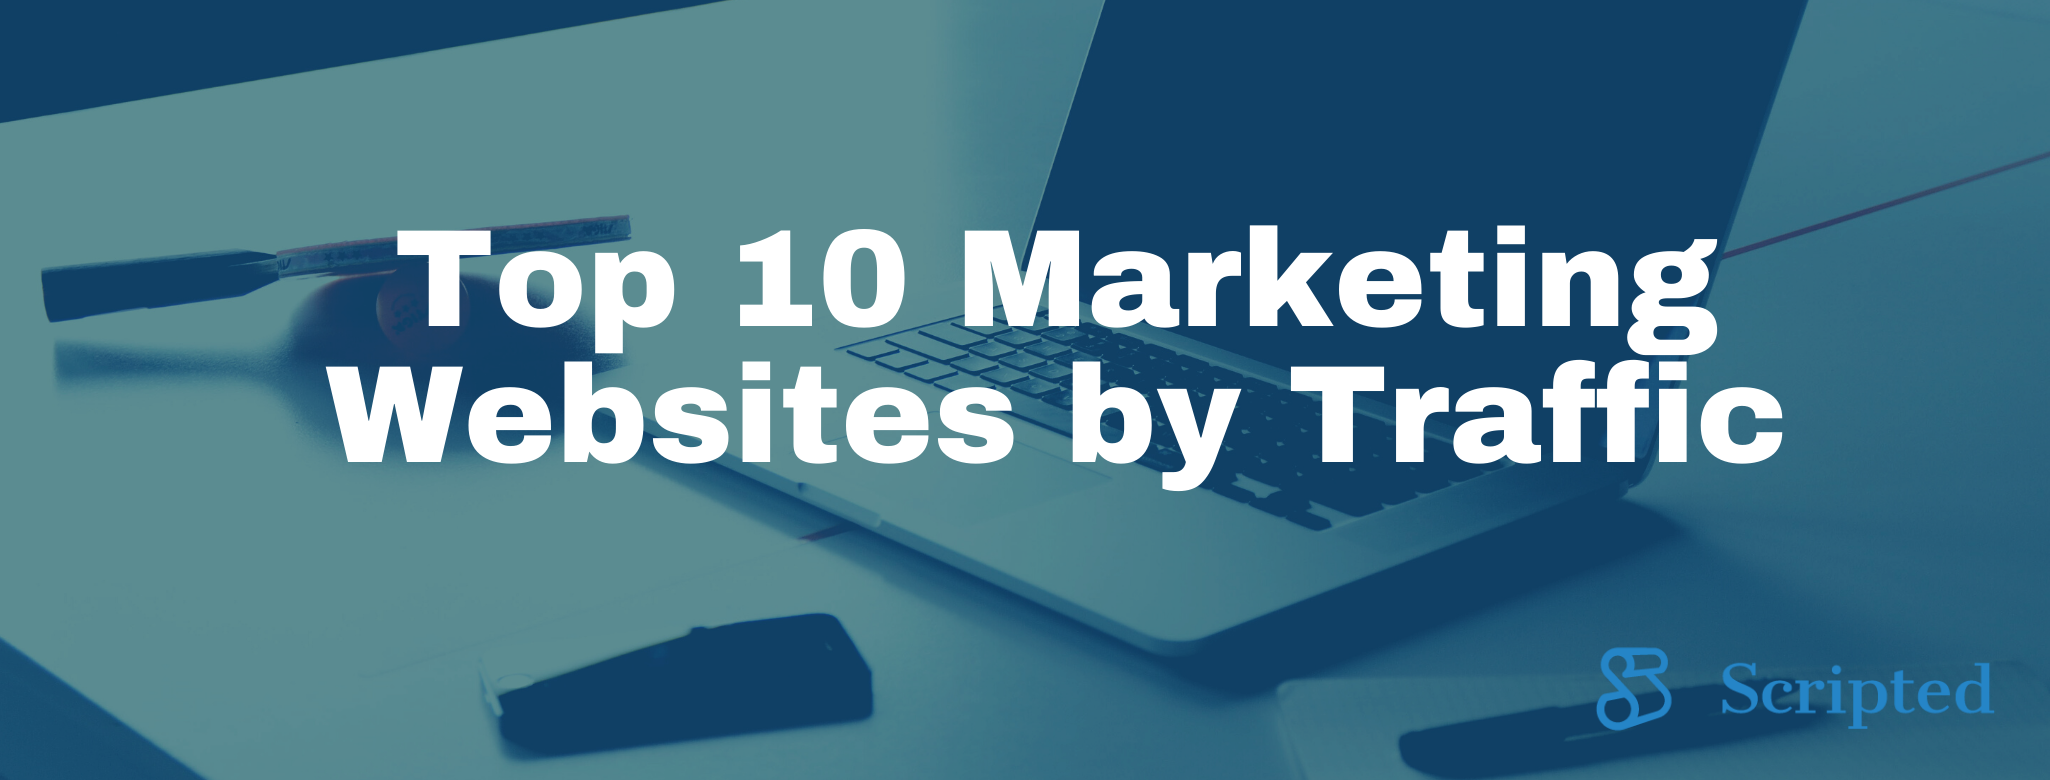 Top 10 Marketing Websites By Organic Traffic